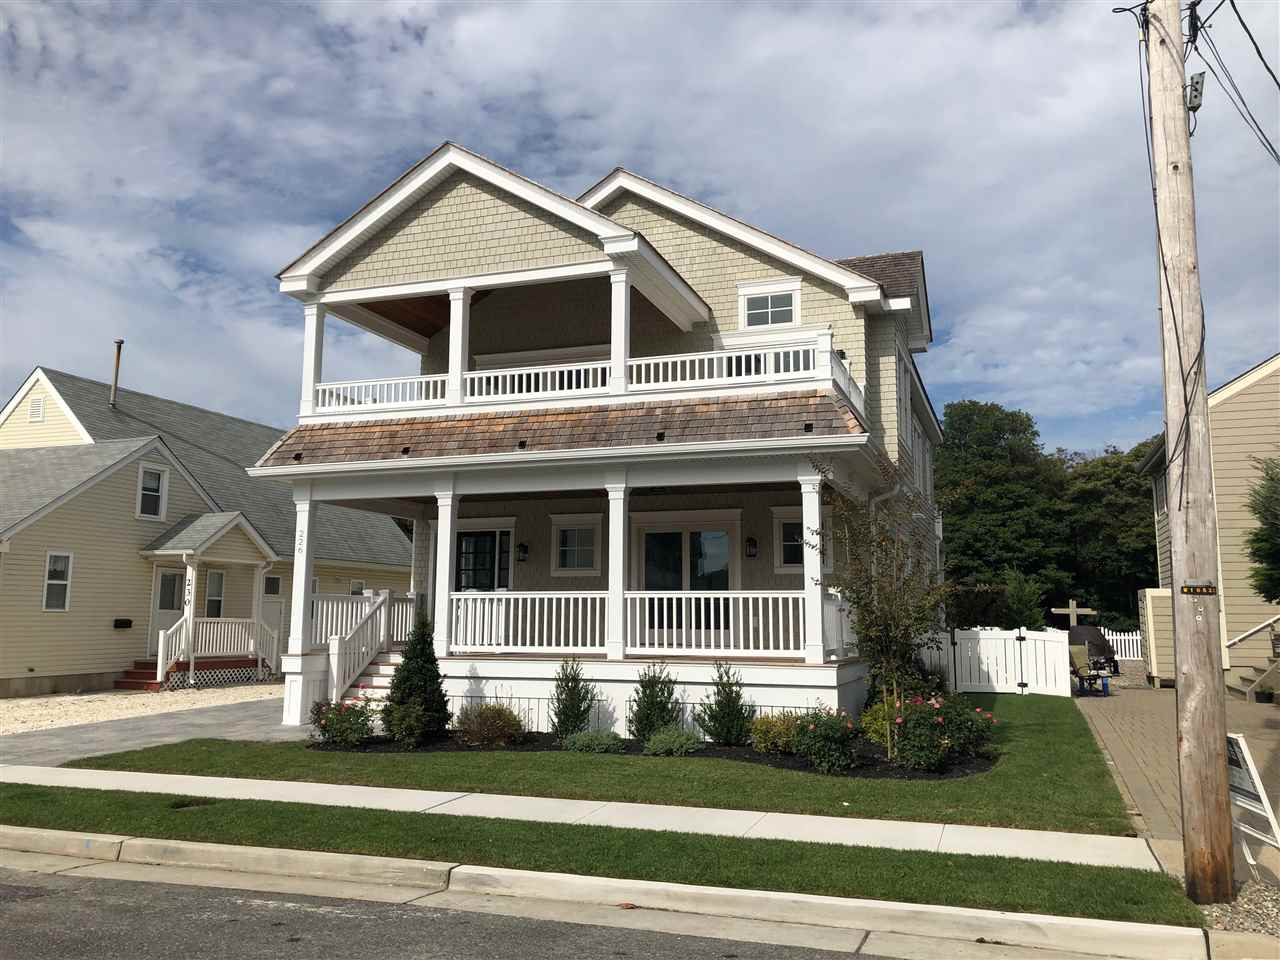 226 117th, Stone Harbor, NJ 08247